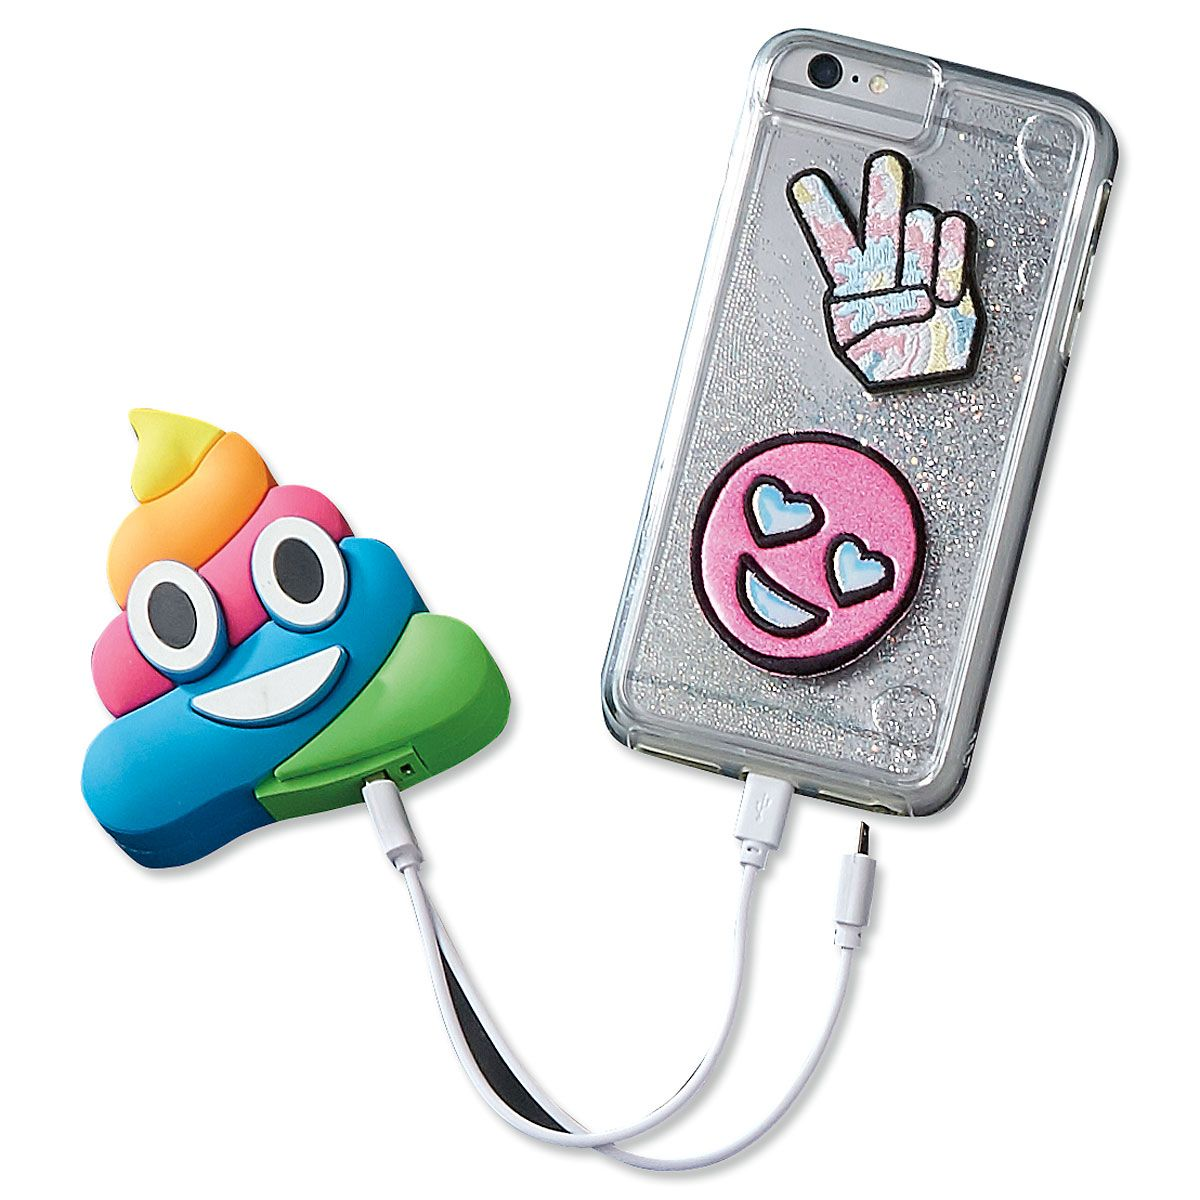 Rainbow Poop Emojicon Power Bank Phone Charger